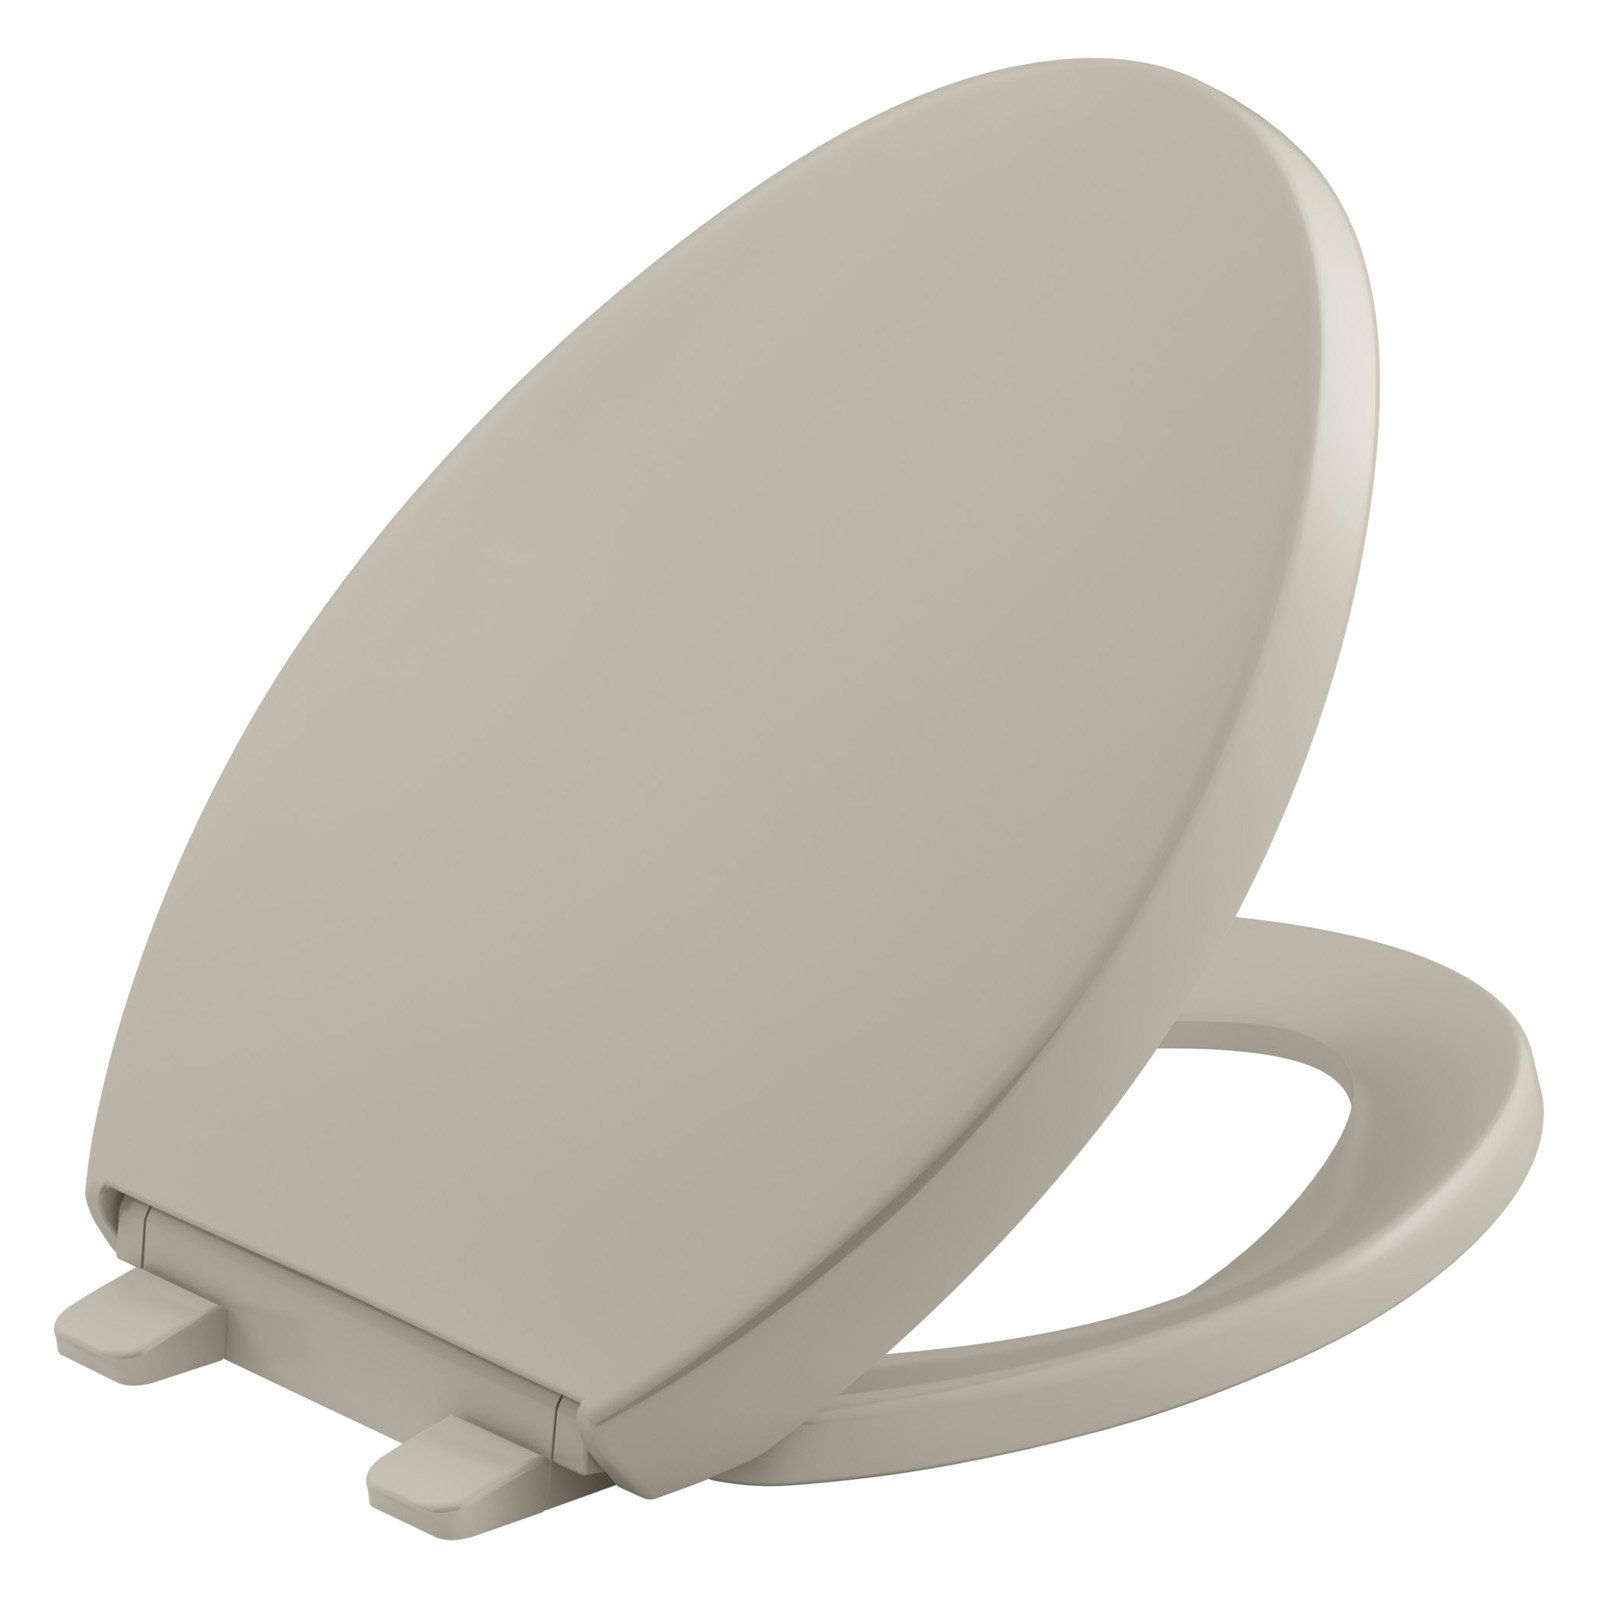 Stupendous Kohler Reveal Quiet Close Elongated Toilet Seat With Grip Andrewgaddart Wooden Chair Designs For Living Room Andrewgaddartcom